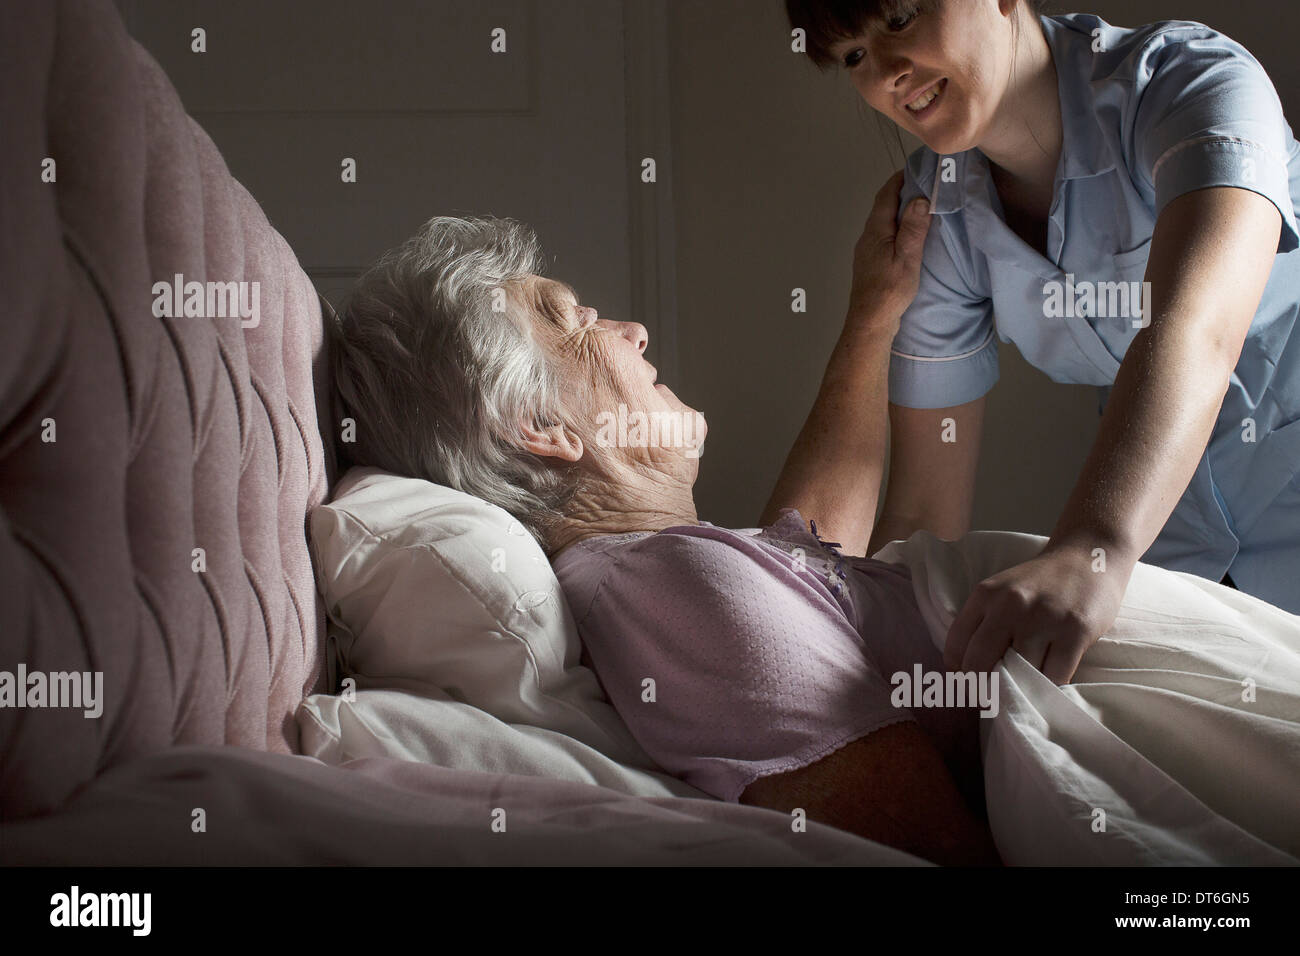 Personal care assistant chatting to senior woman in bed - Stock Image